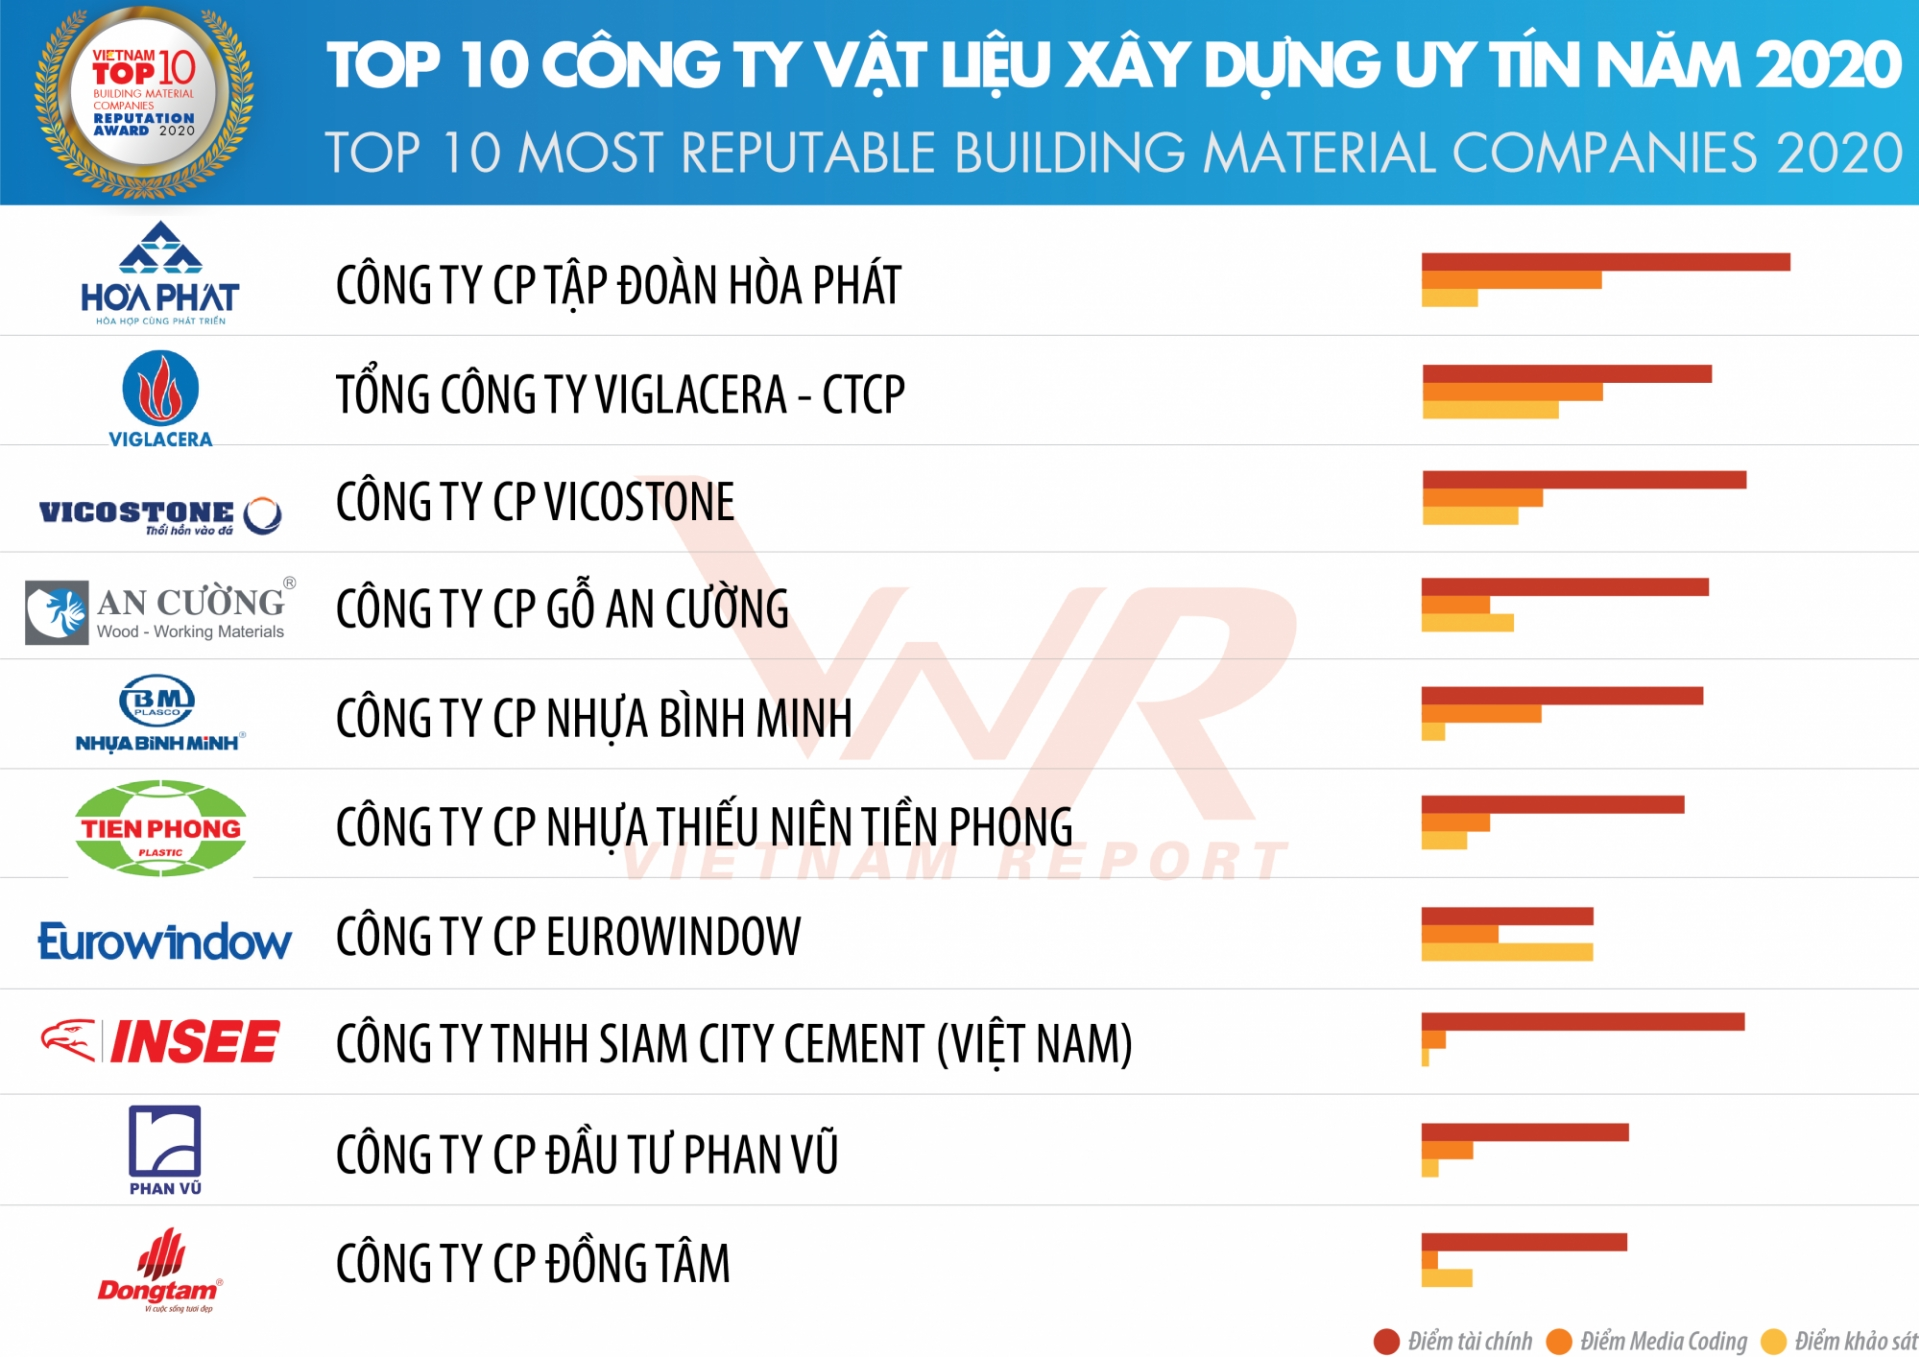 insee vietnam continually honoured in top 10 most reputable building material companies